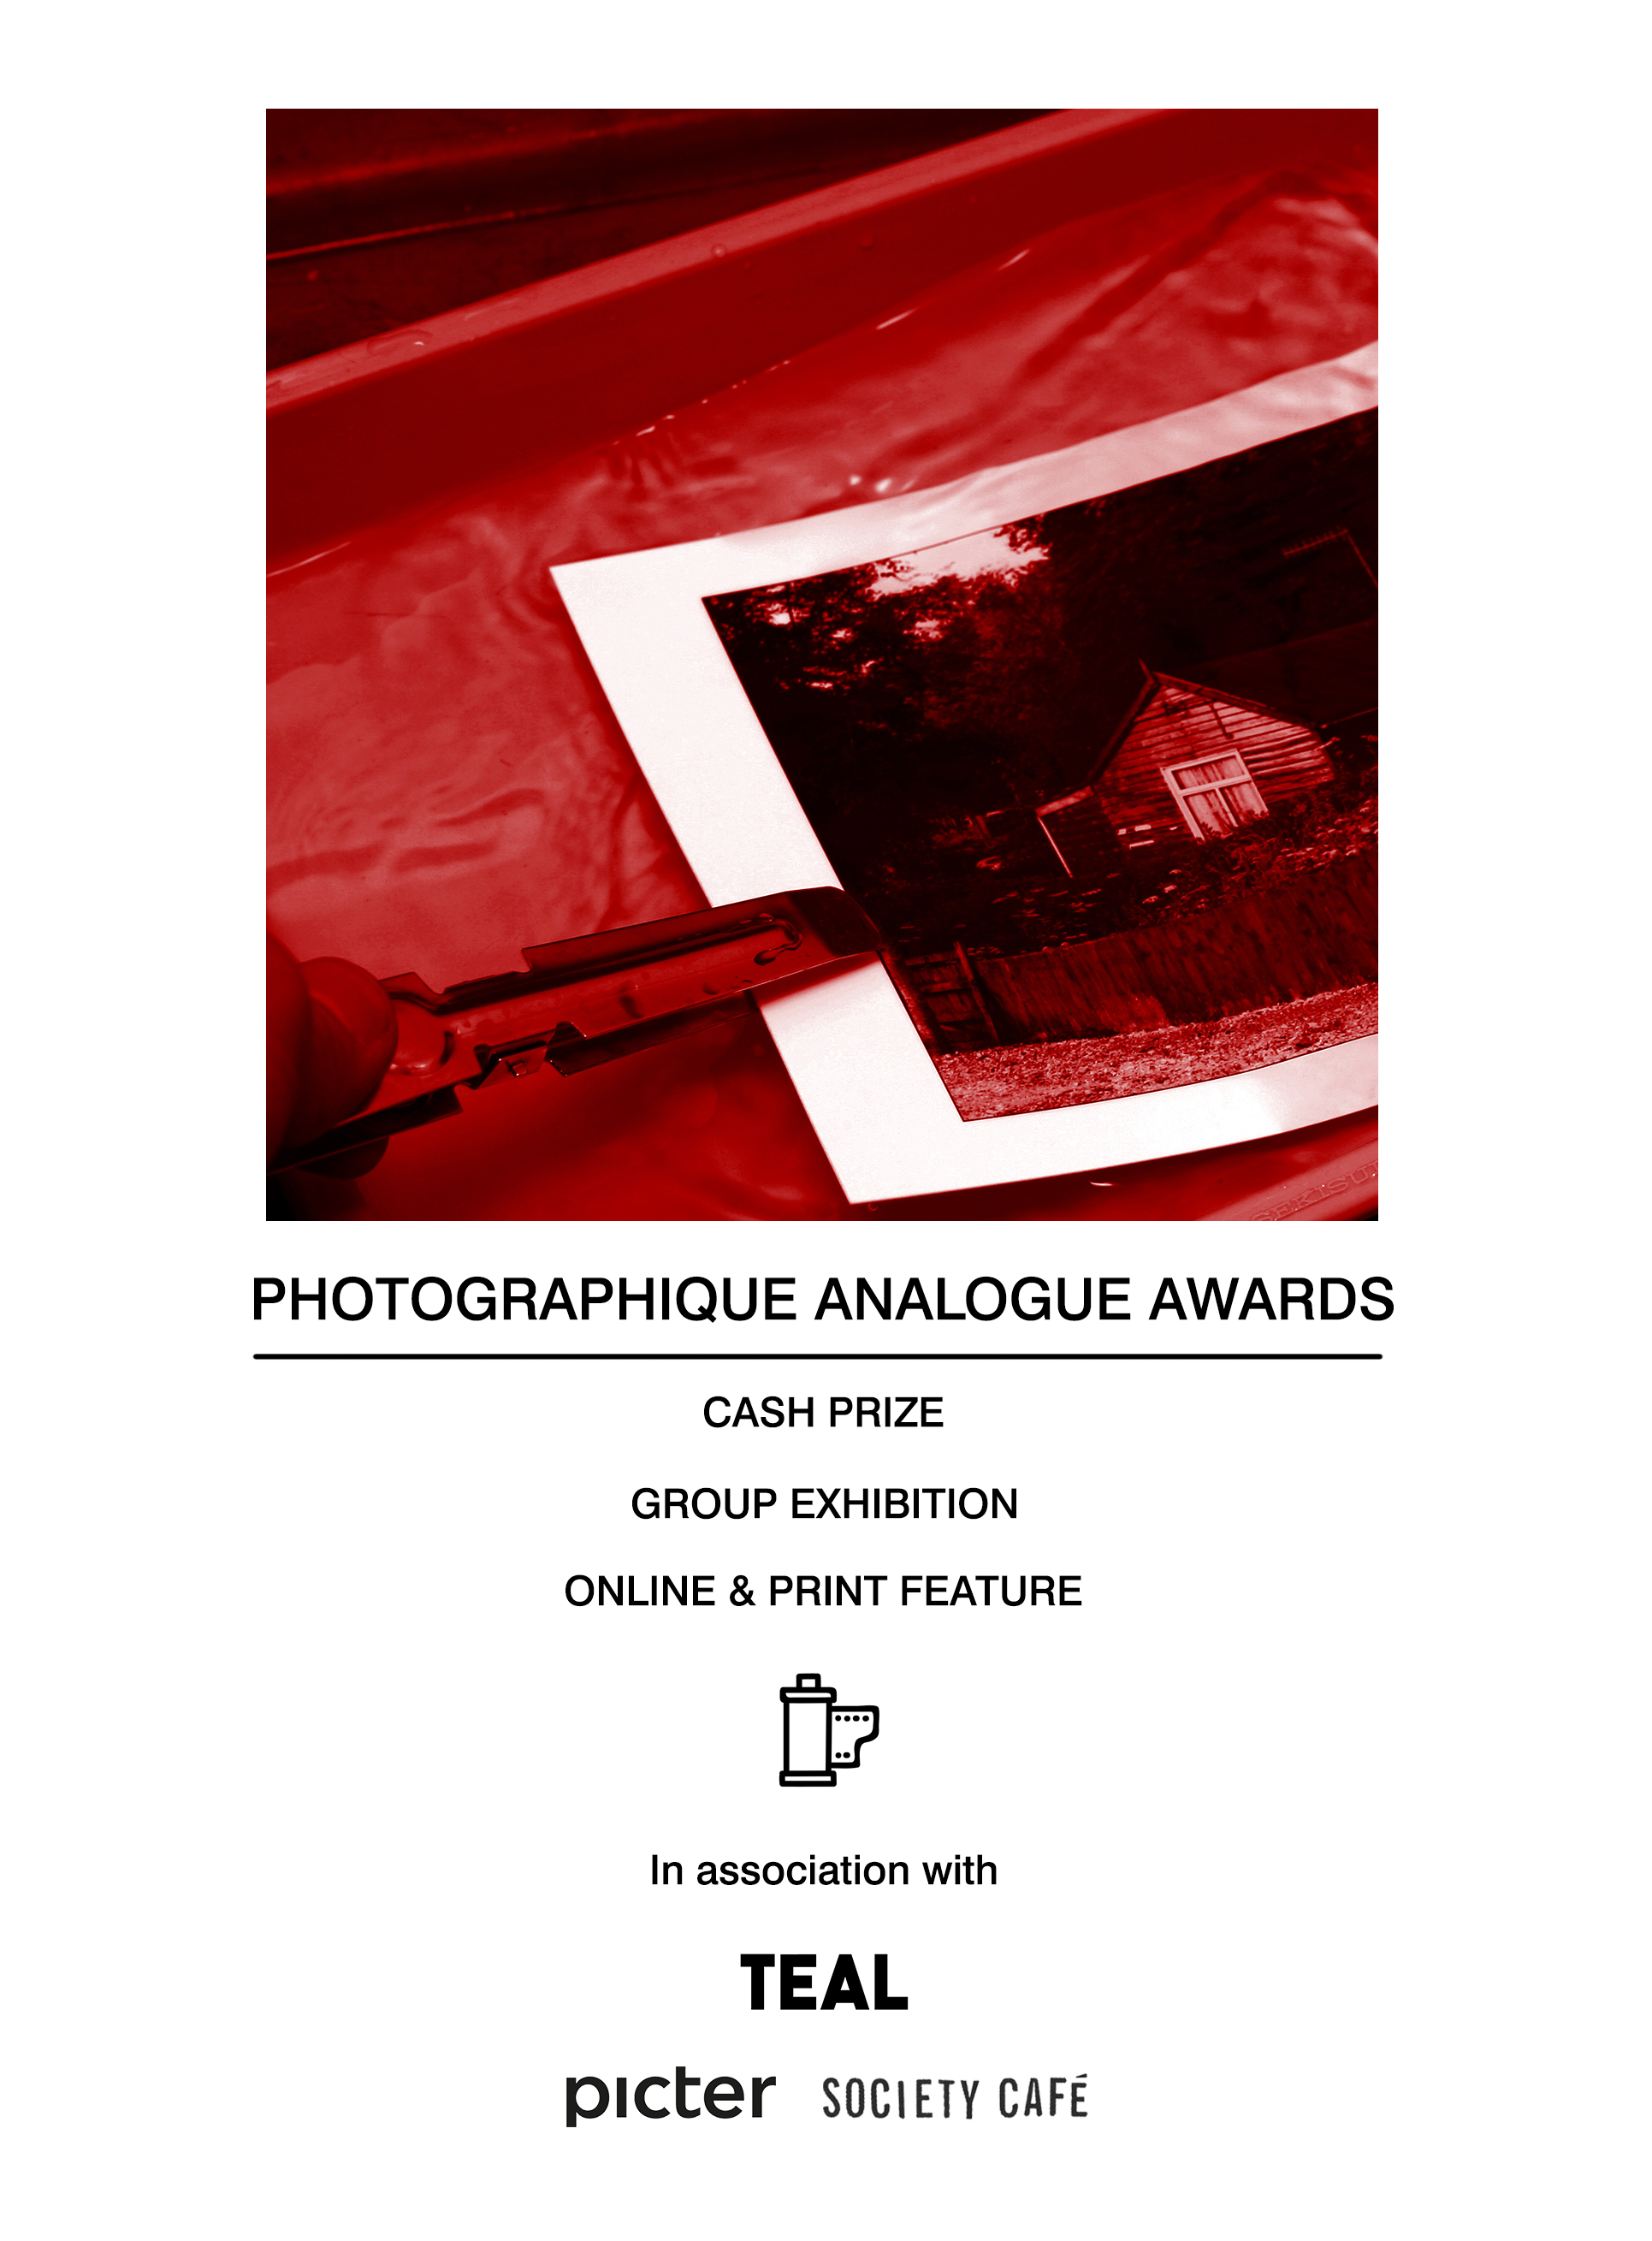 Photographique Analogue Award | Photo Contest Deadlines